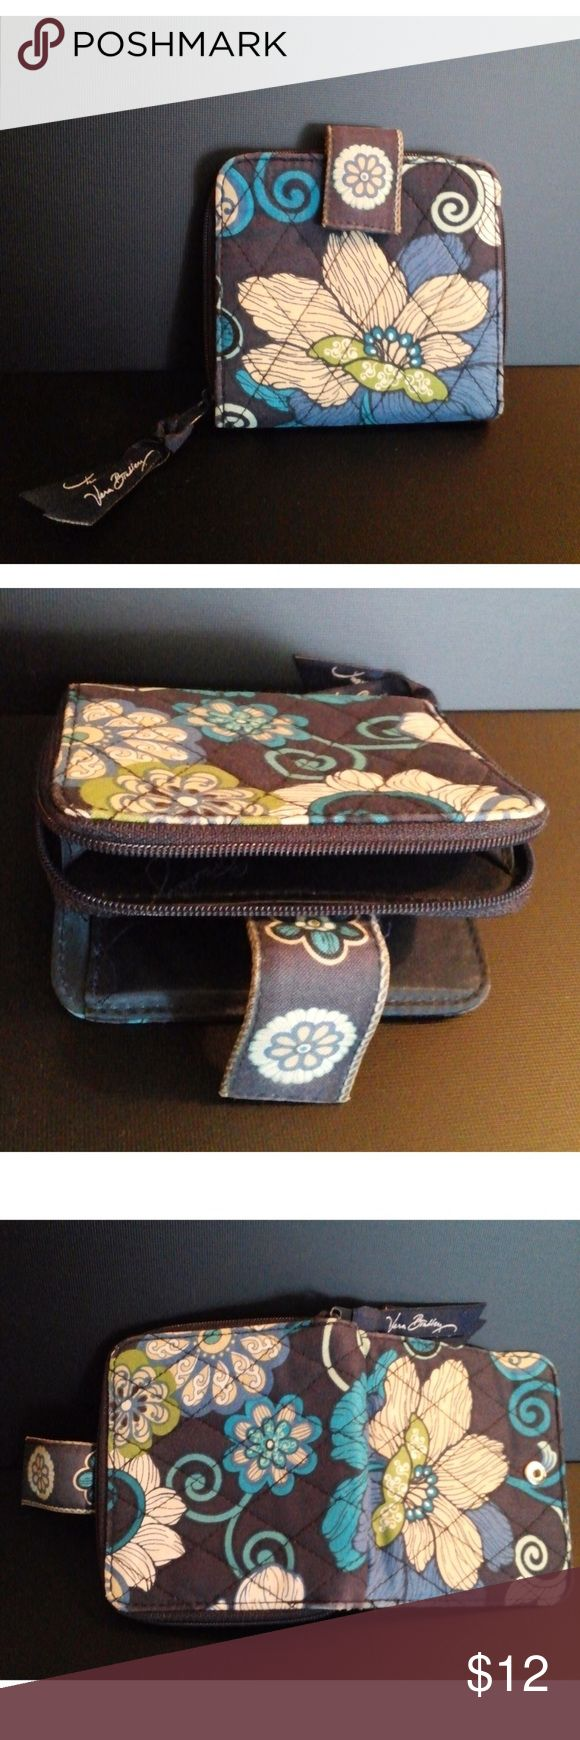 """Vera Bradley Mini Zip Wallet in Mod Floral Blue An adorable wallet with lots of compartments, slots for bills and cards, a clear ID window and a zippered, gusseted coin purse.   *Finished with a tab closure *Mod Floral Blue print *Measures approximately 4"""" x 4""""  Used; Excellent Condition Vera Bradley Bags Wallets"""